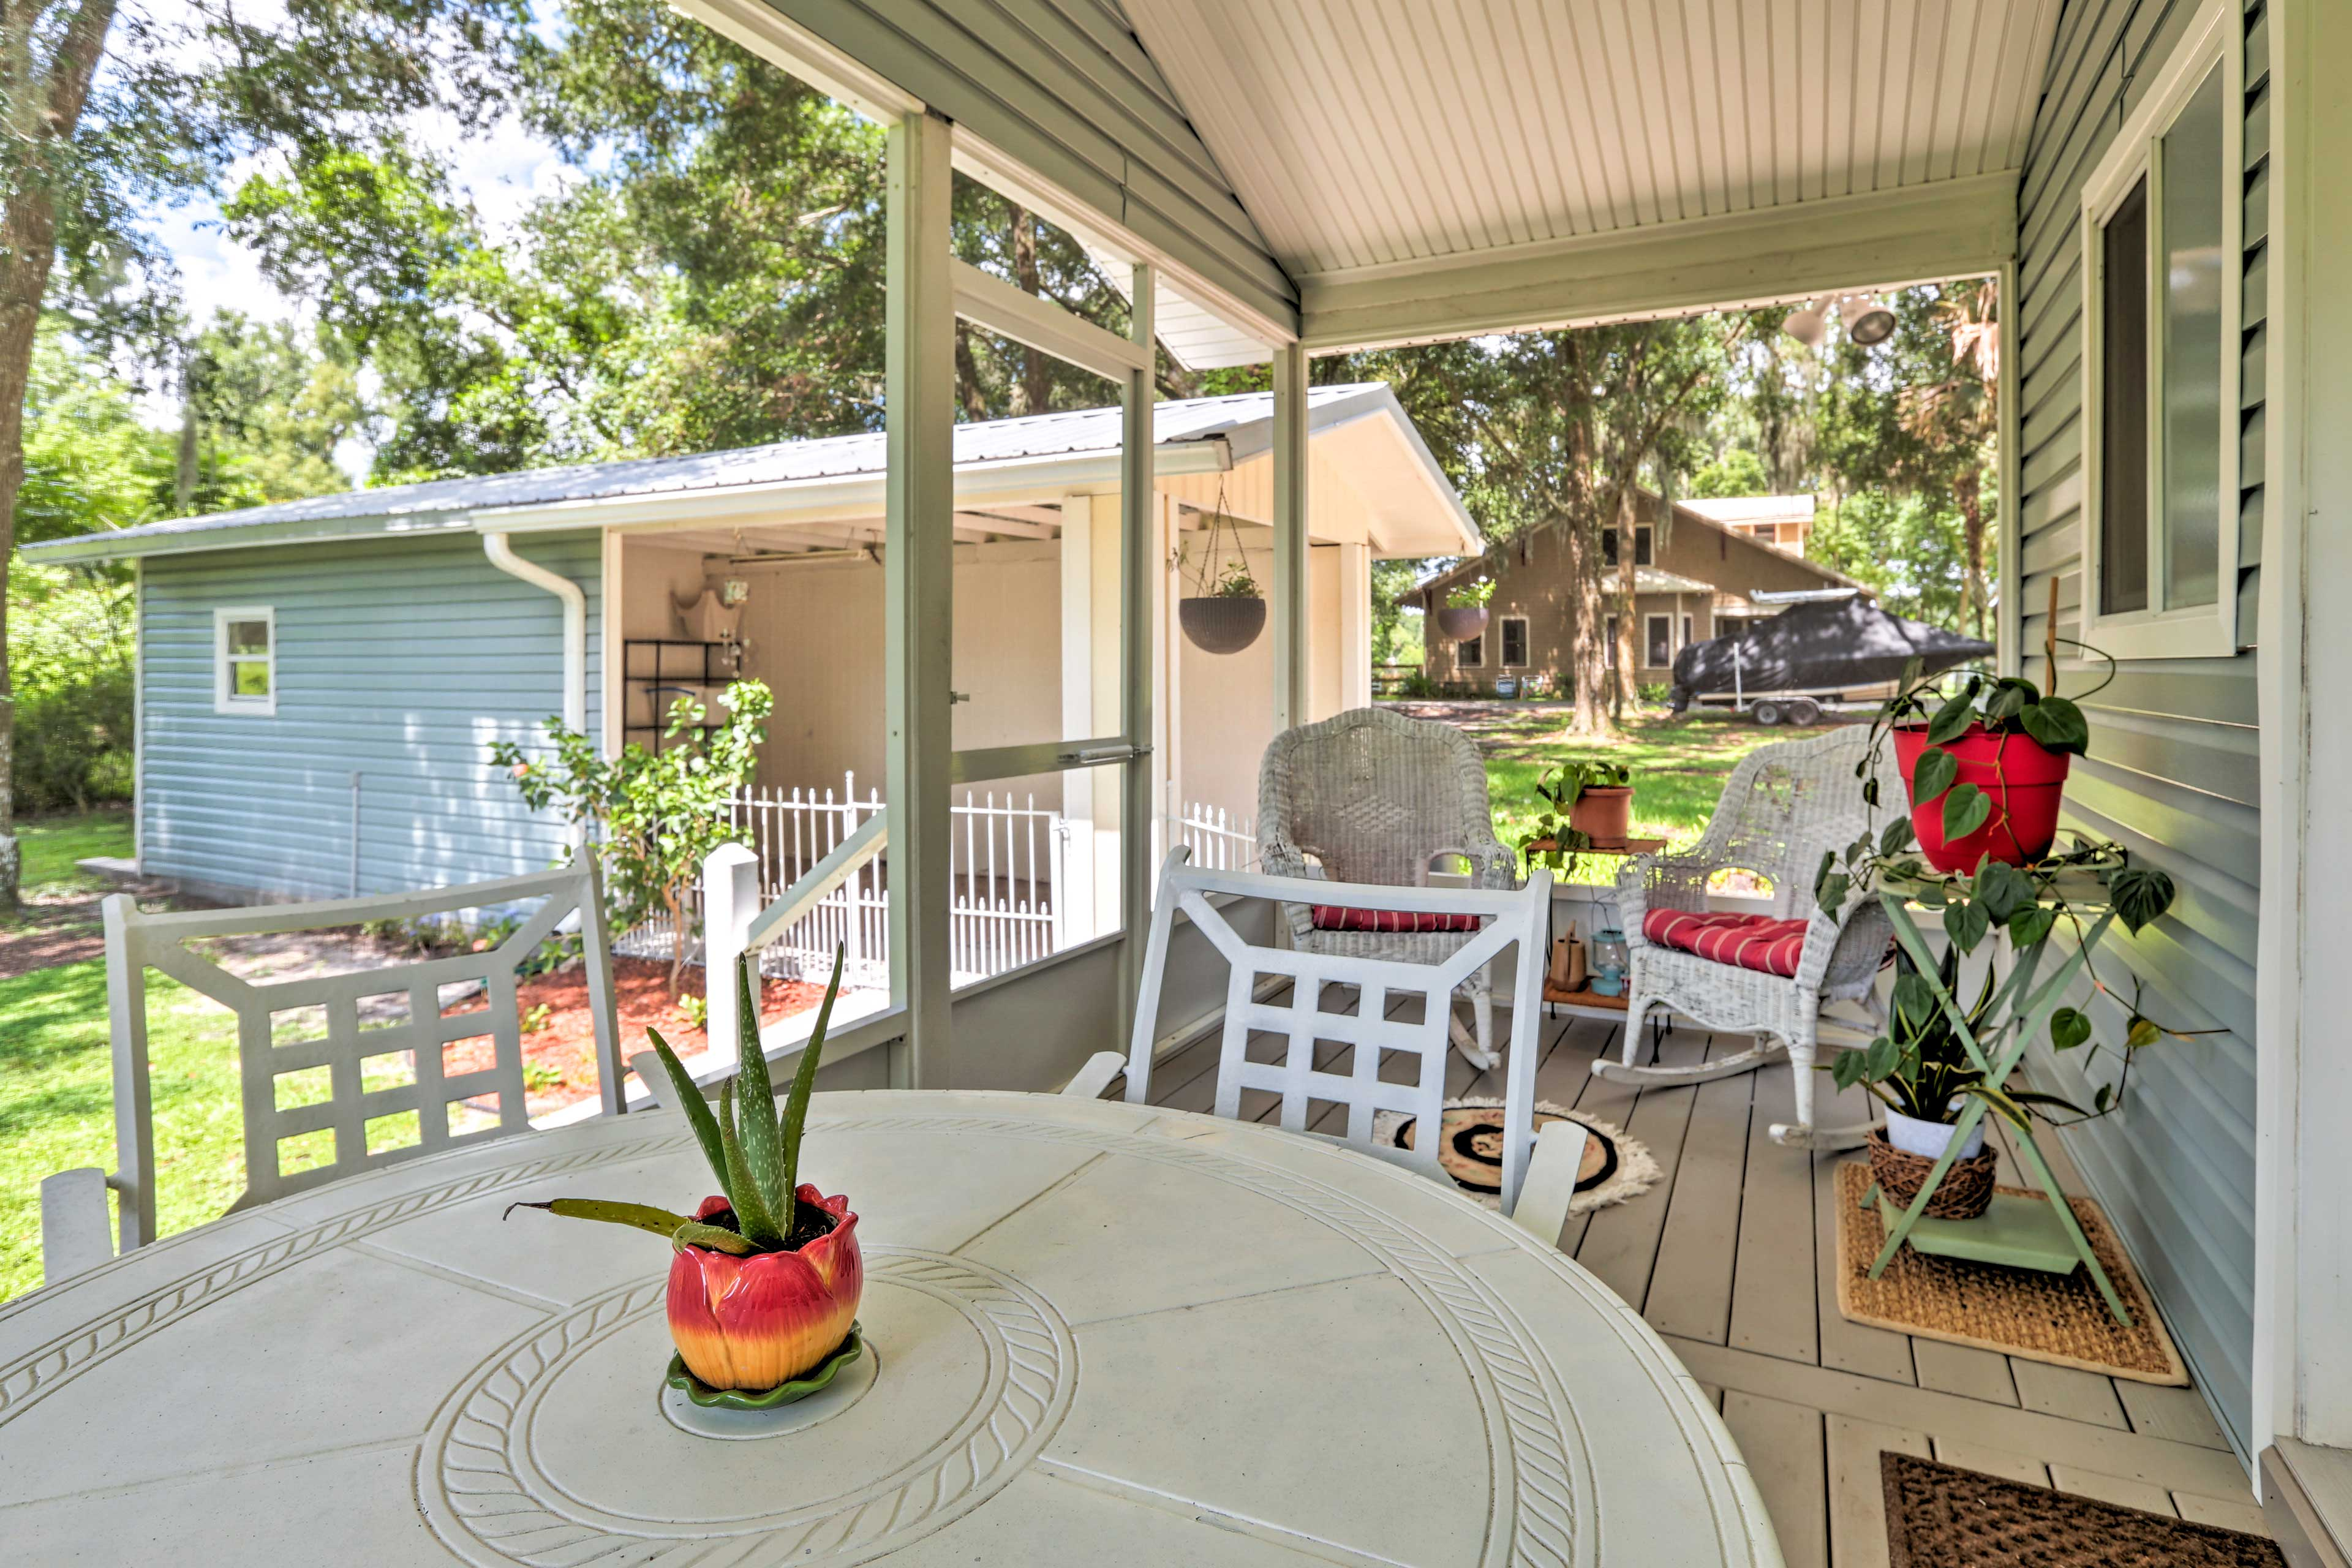 Spend the afternoon on the screened porch.